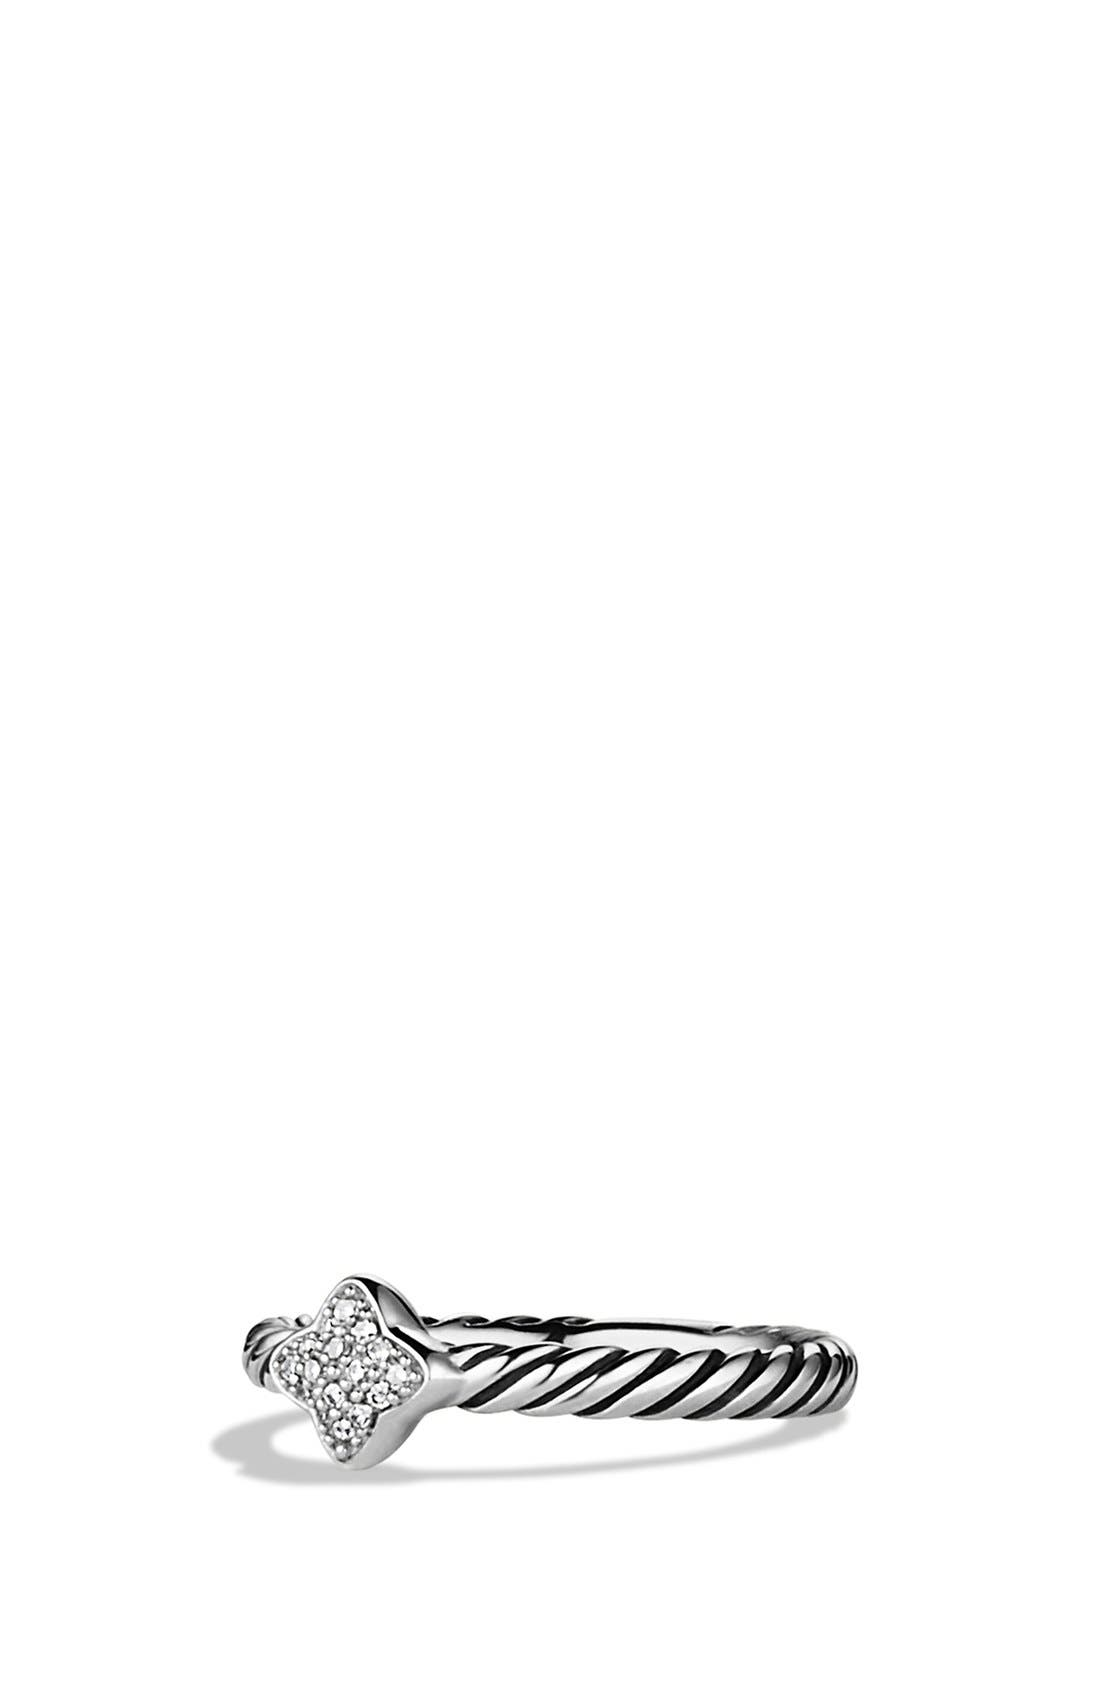 Main Image - David Yurman 'Cable Collectibles - Quatrefoil' Ring with Diamonds